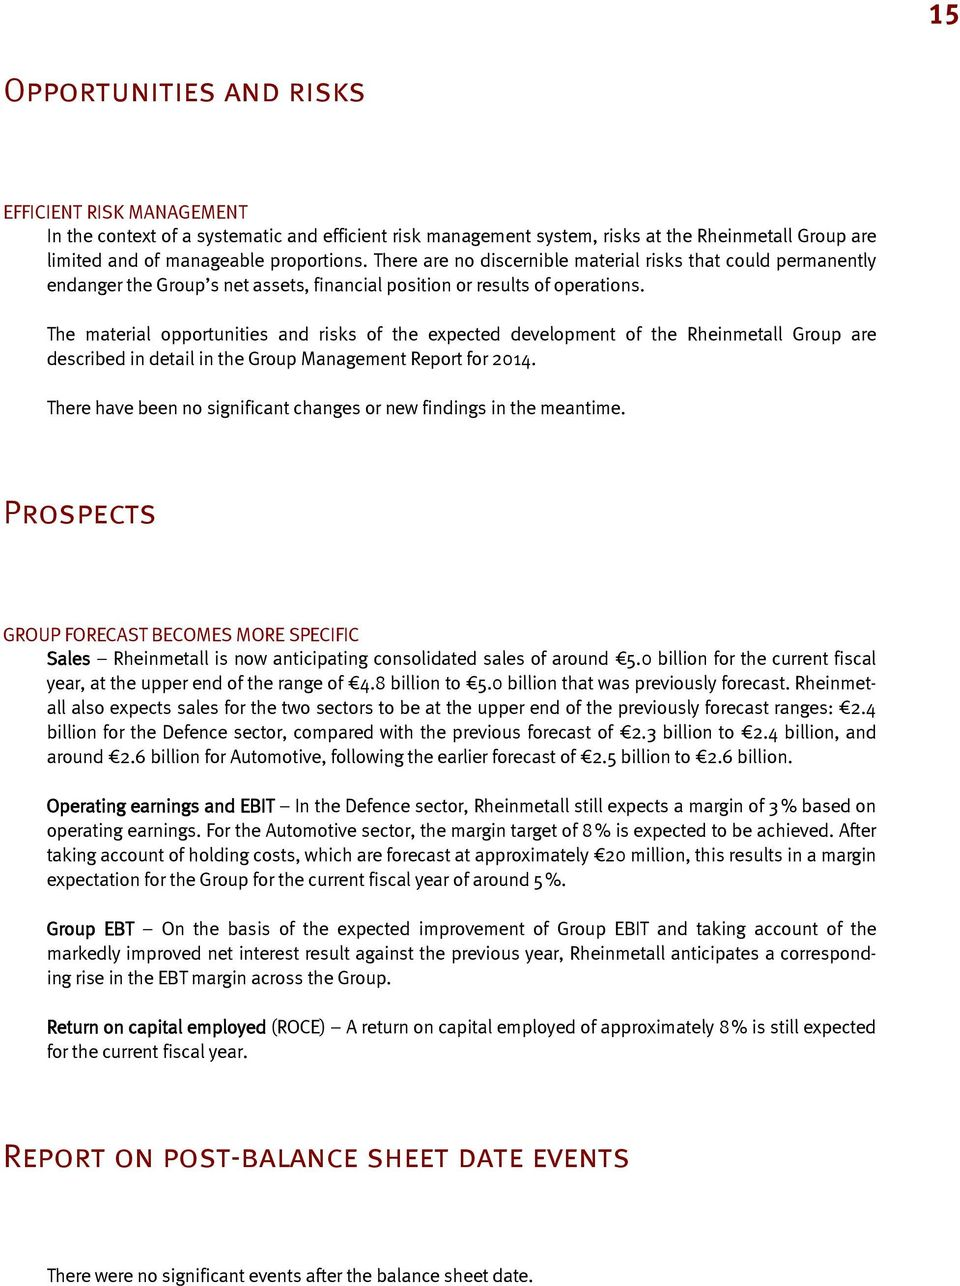 The material opportunities and risks of the expected development of the Rheinmetall Group are described in detail in the Group Management Report for 2014.